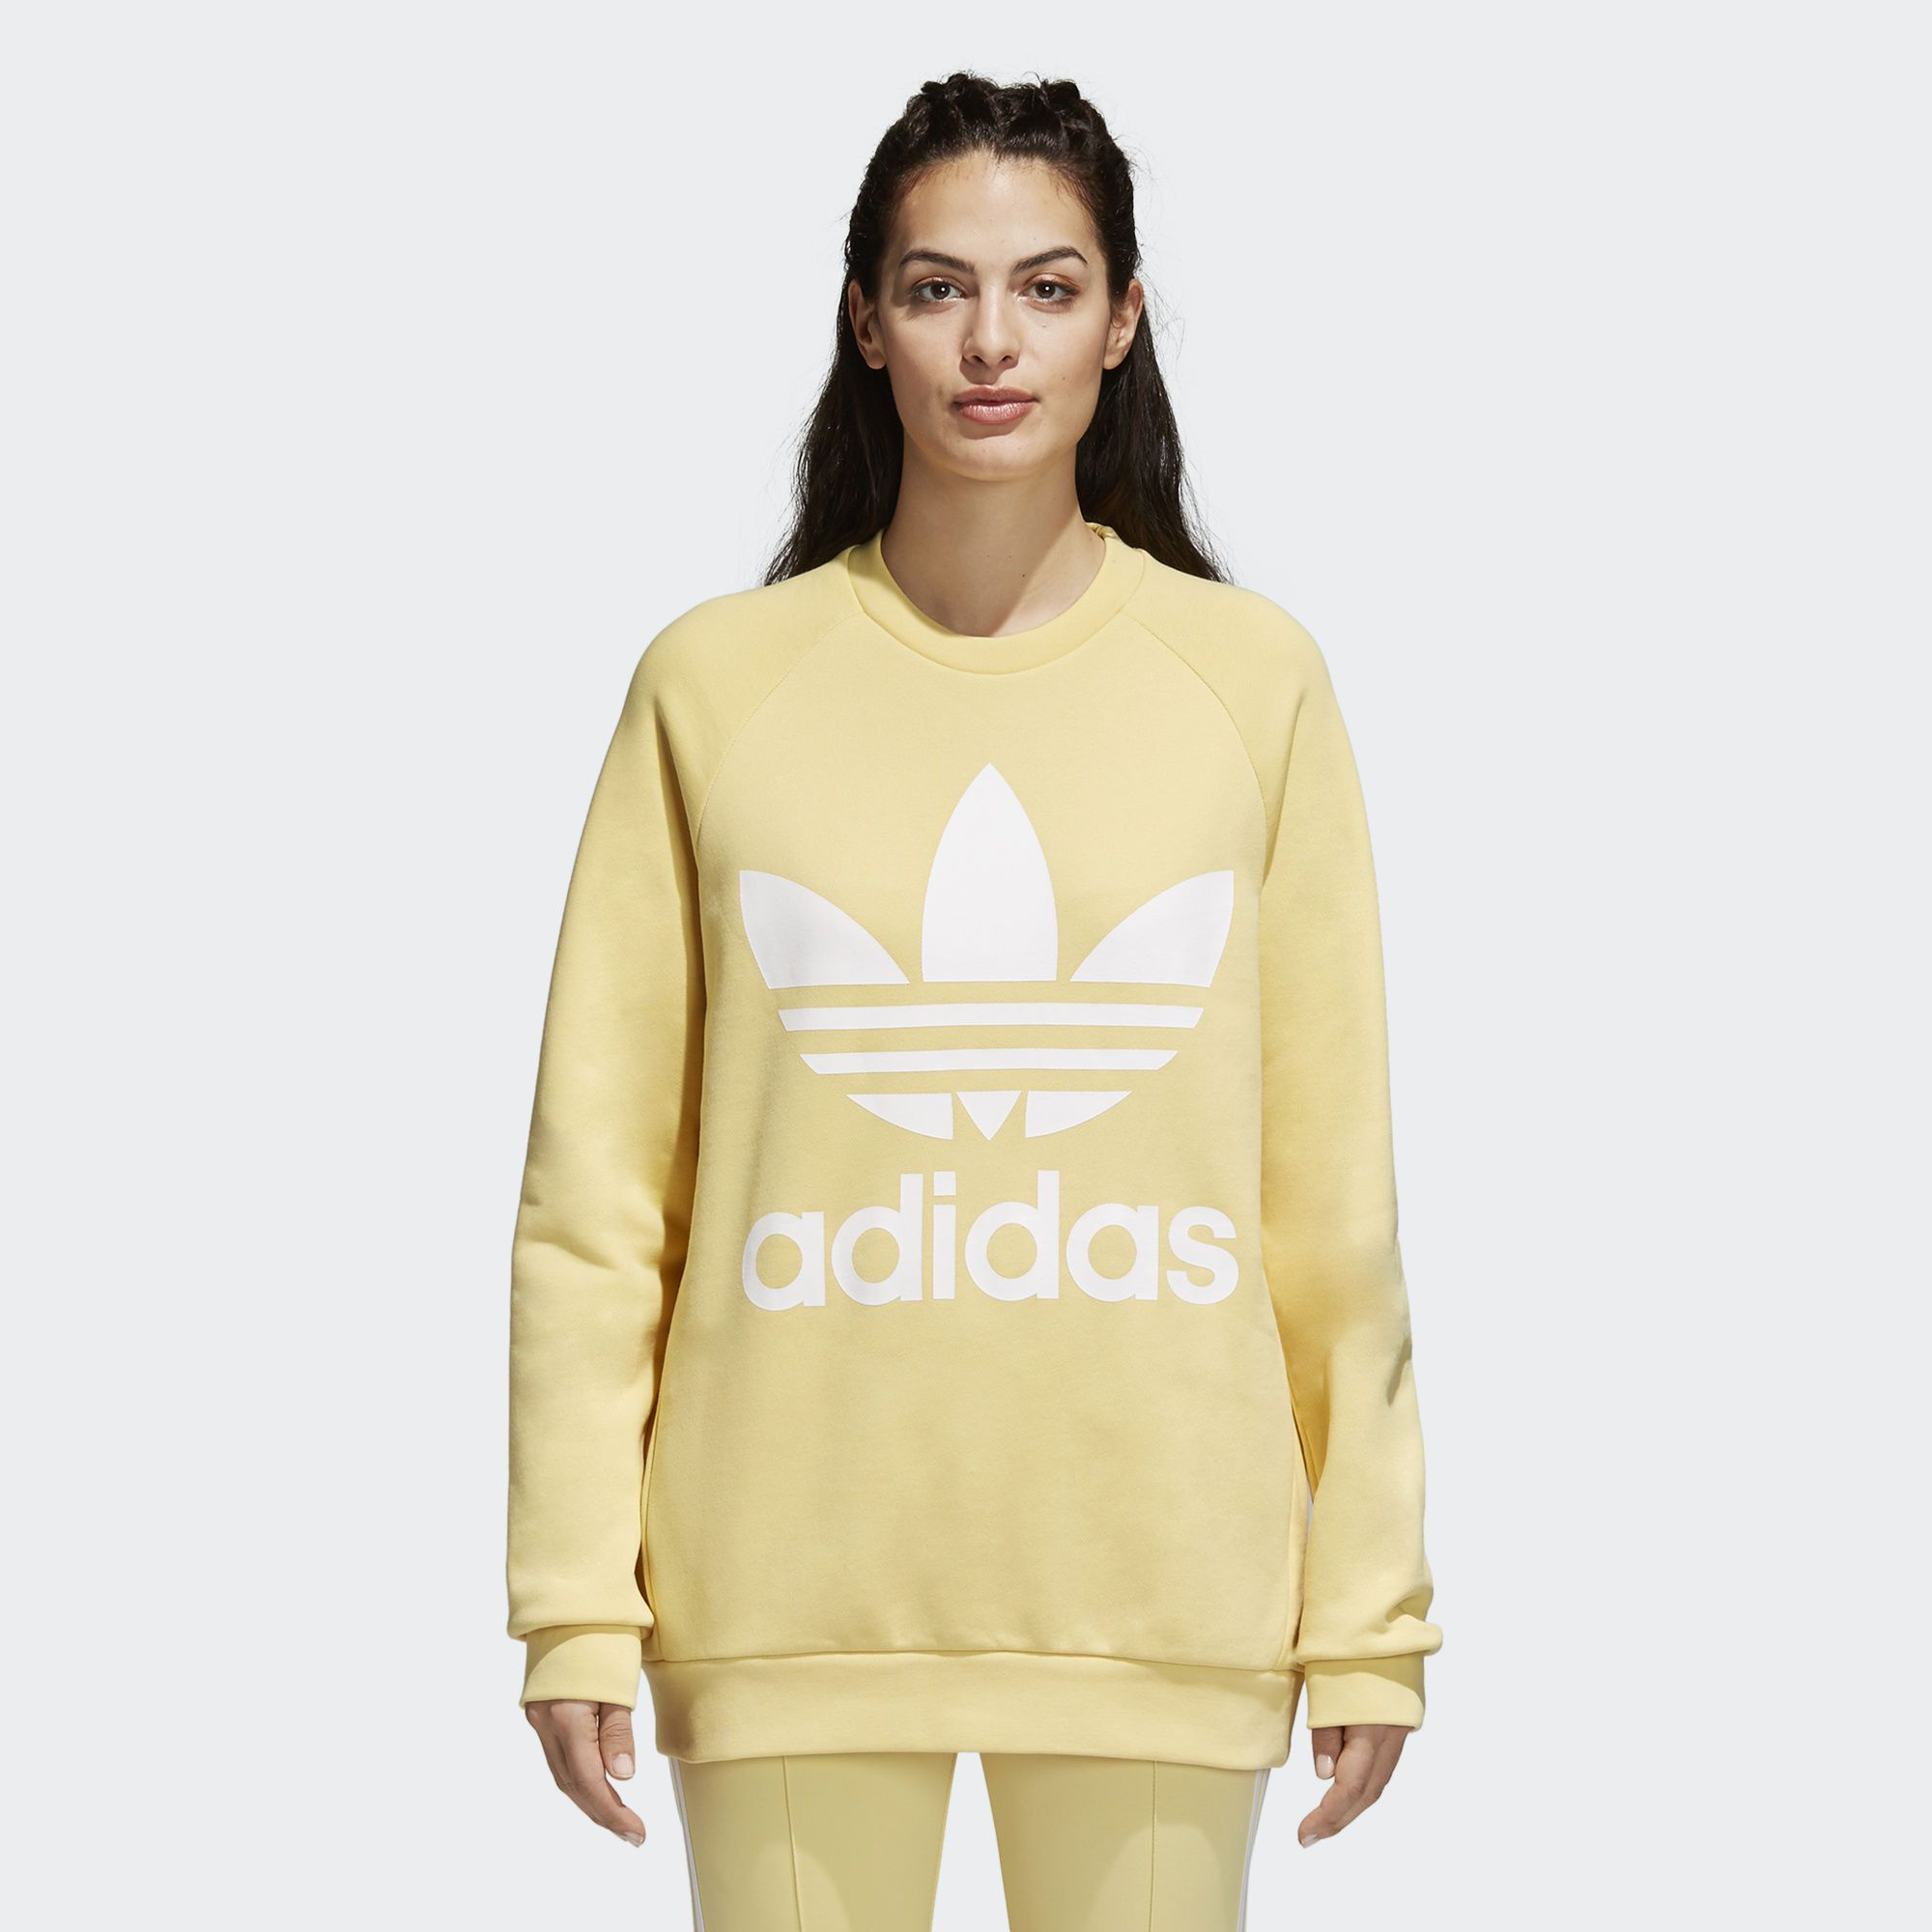 Shop The Trefoil Oversize Sweatshirt Beige At Adidas Com Us See All The Styles And Colors O Women Hoodies Sweatshirts Oversized Sweatshirt Sweatshirts Women [ 2000 x 2000 Pixel ]